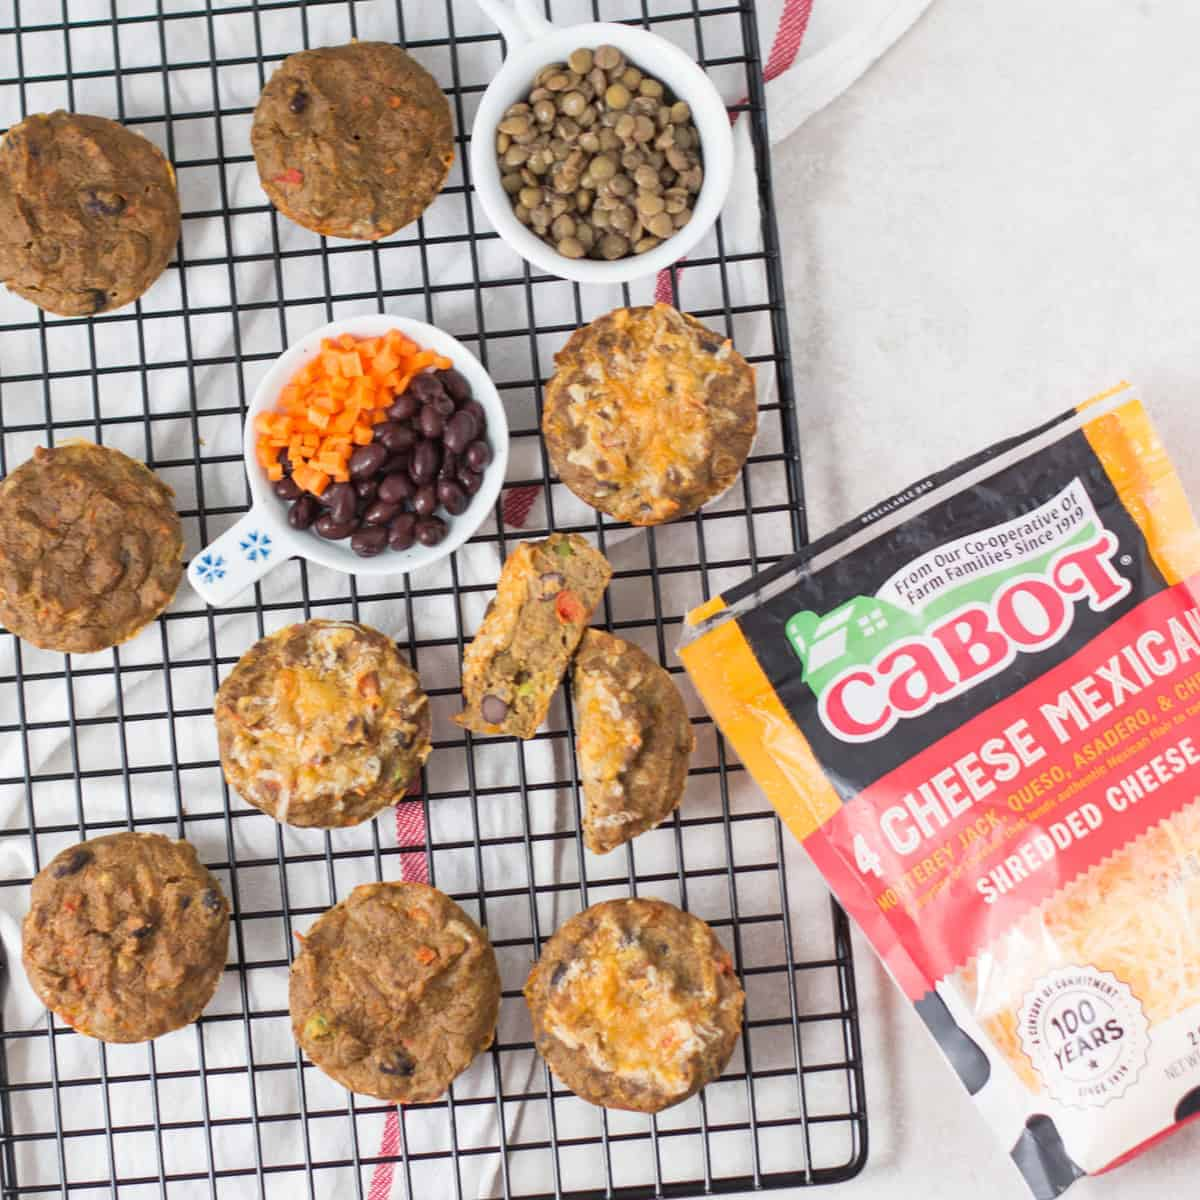 lentil muffins cooling on a wire rack with lentils, black beans, carrots, and Cabot Mexican cheese package